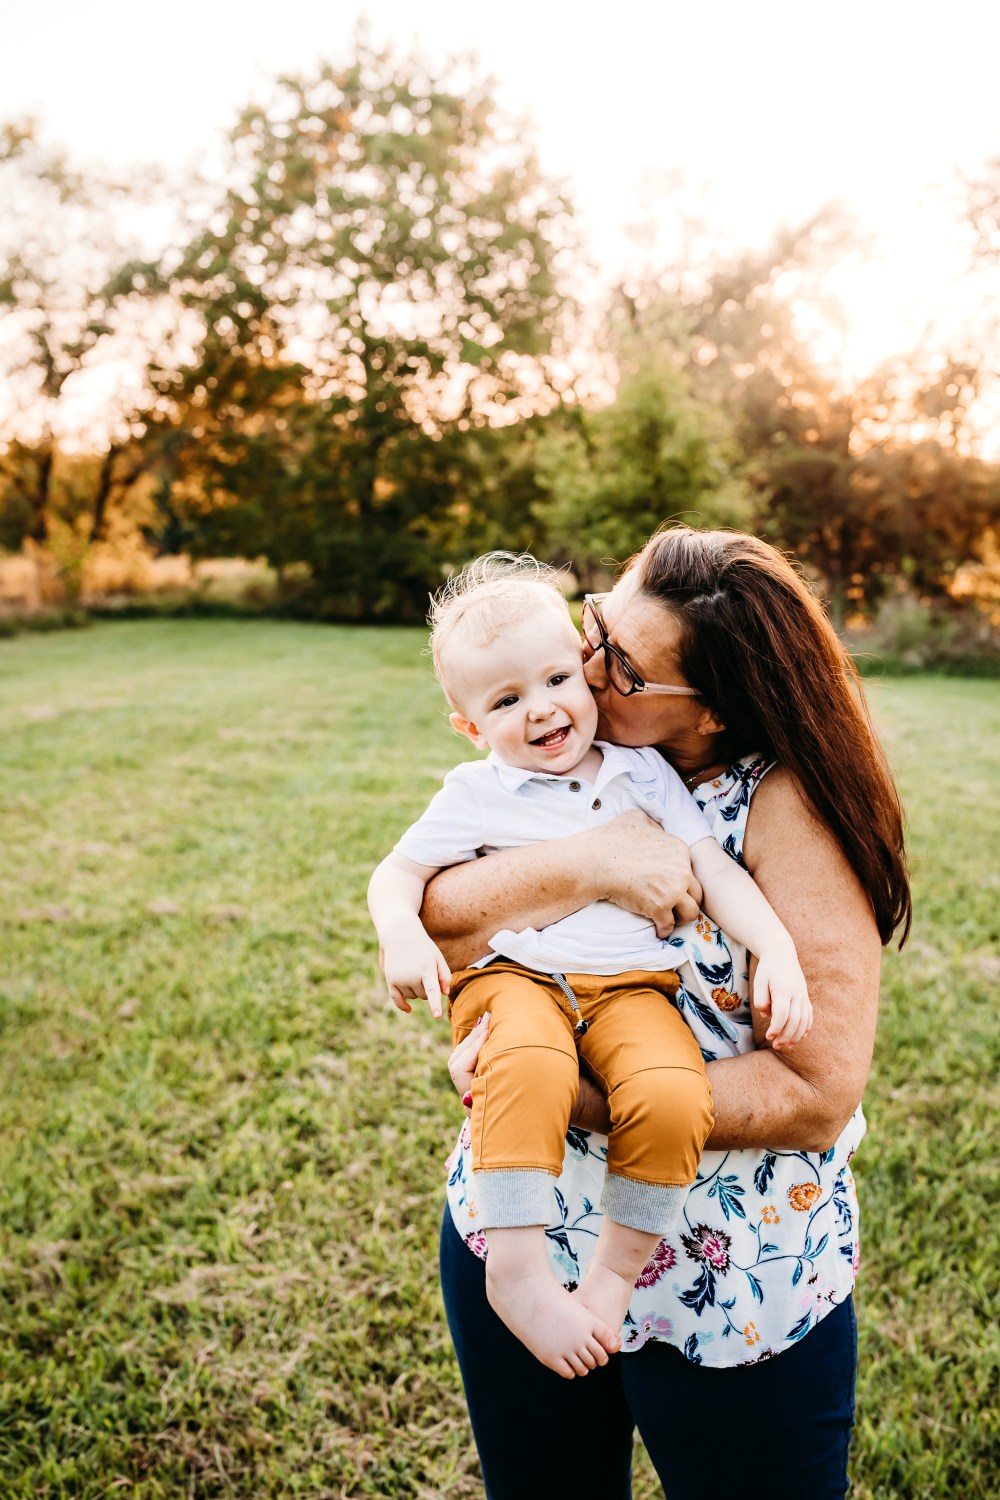 lawrence kansas photographer, kansas, olathe ks, newborn photographer, infant photographer, overland park kansas, topeka, sunset photography, infant photography, lawrence kansas photographer